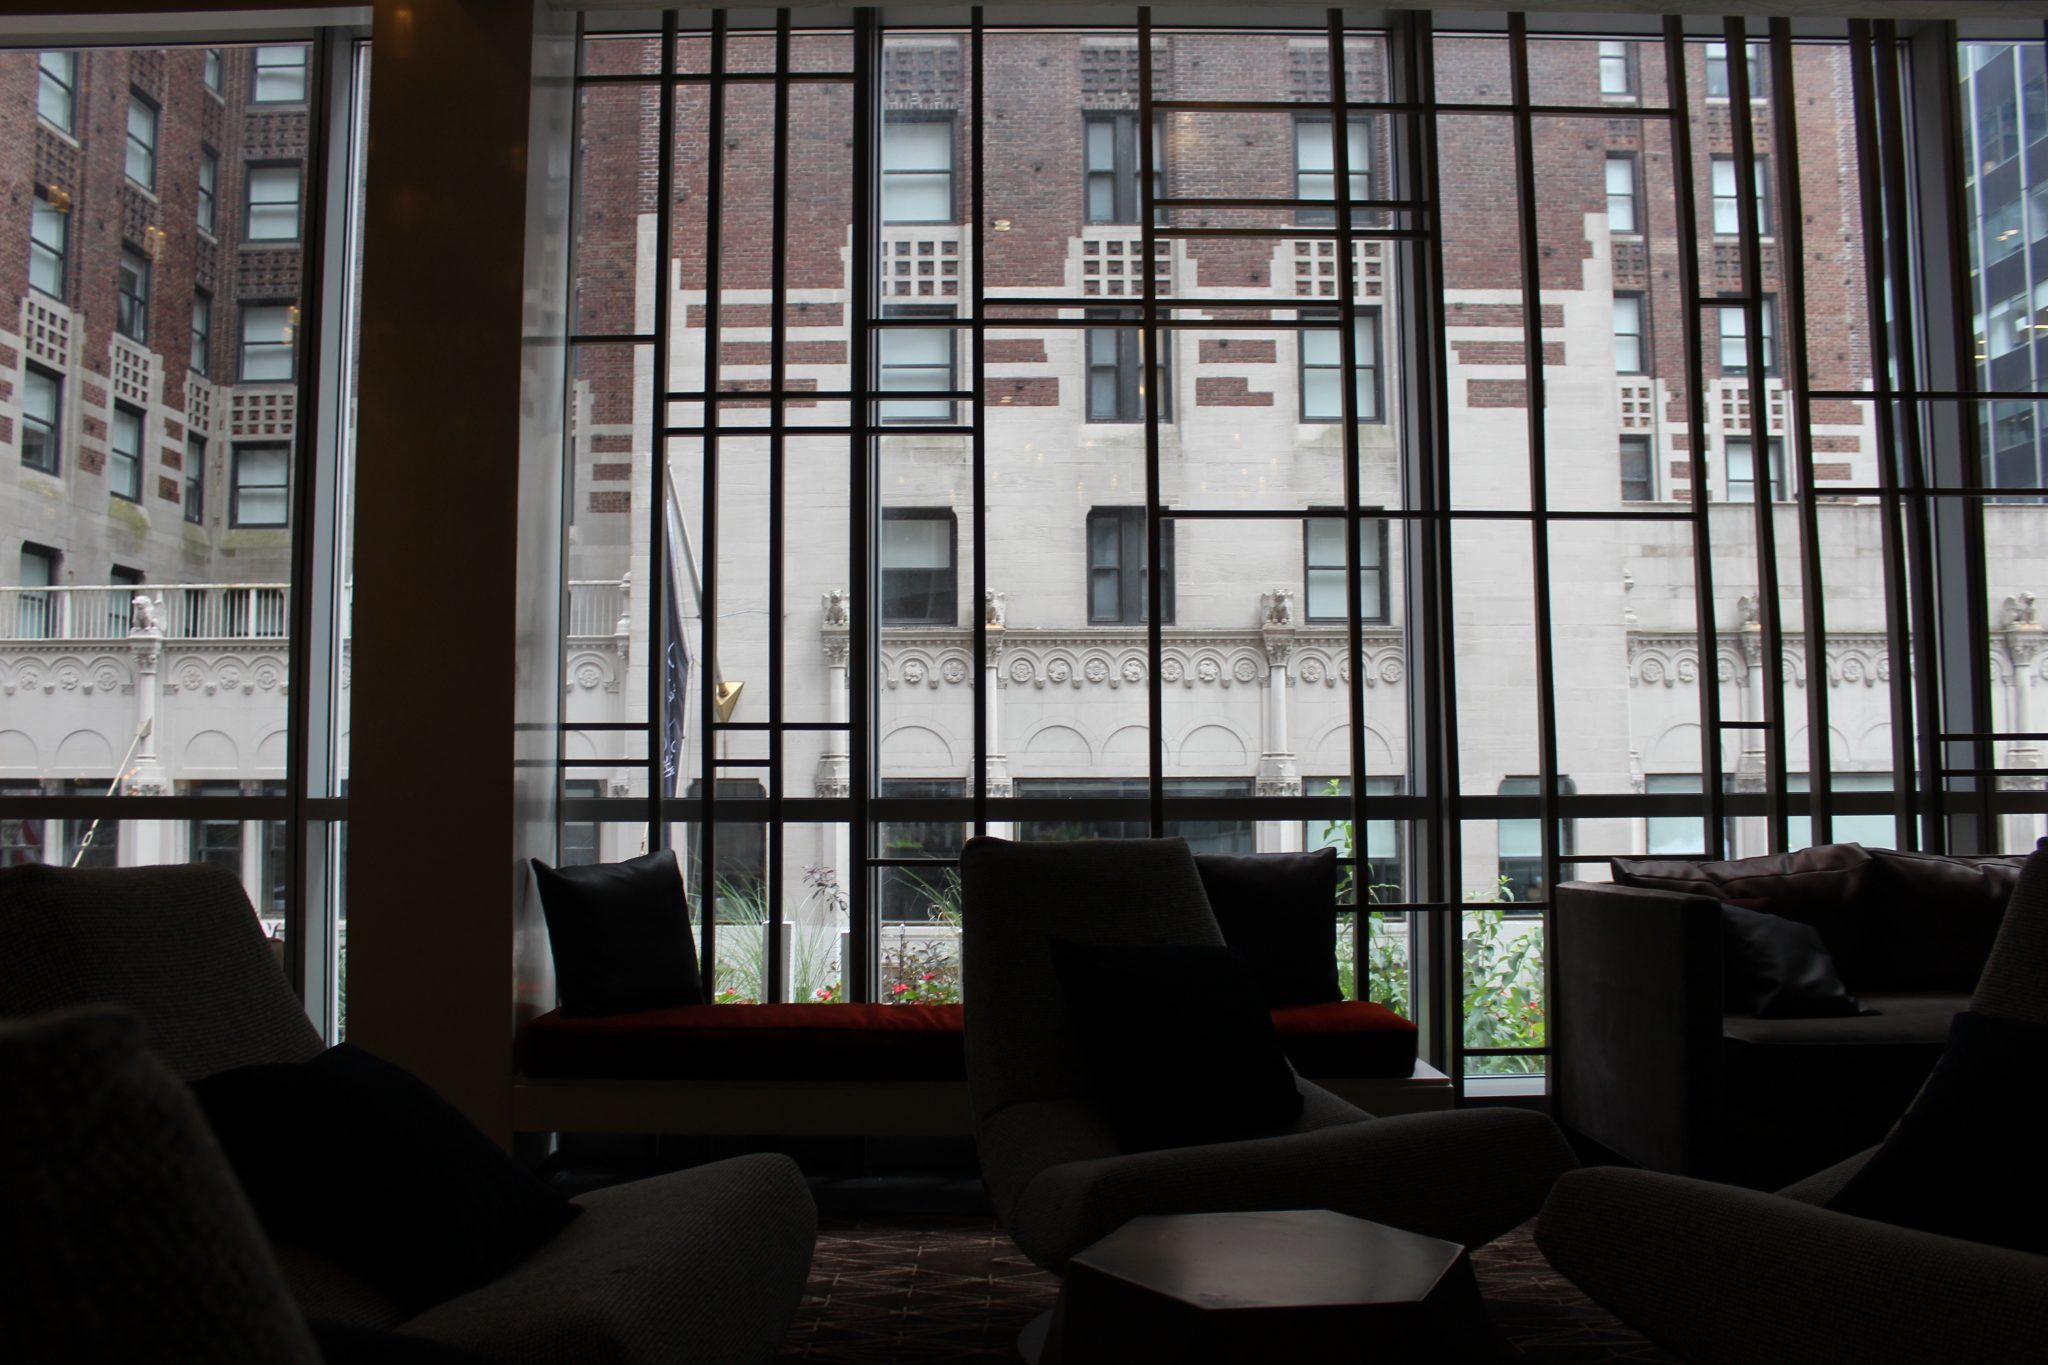 Review of Hotel 48Lex sparkleshinylove